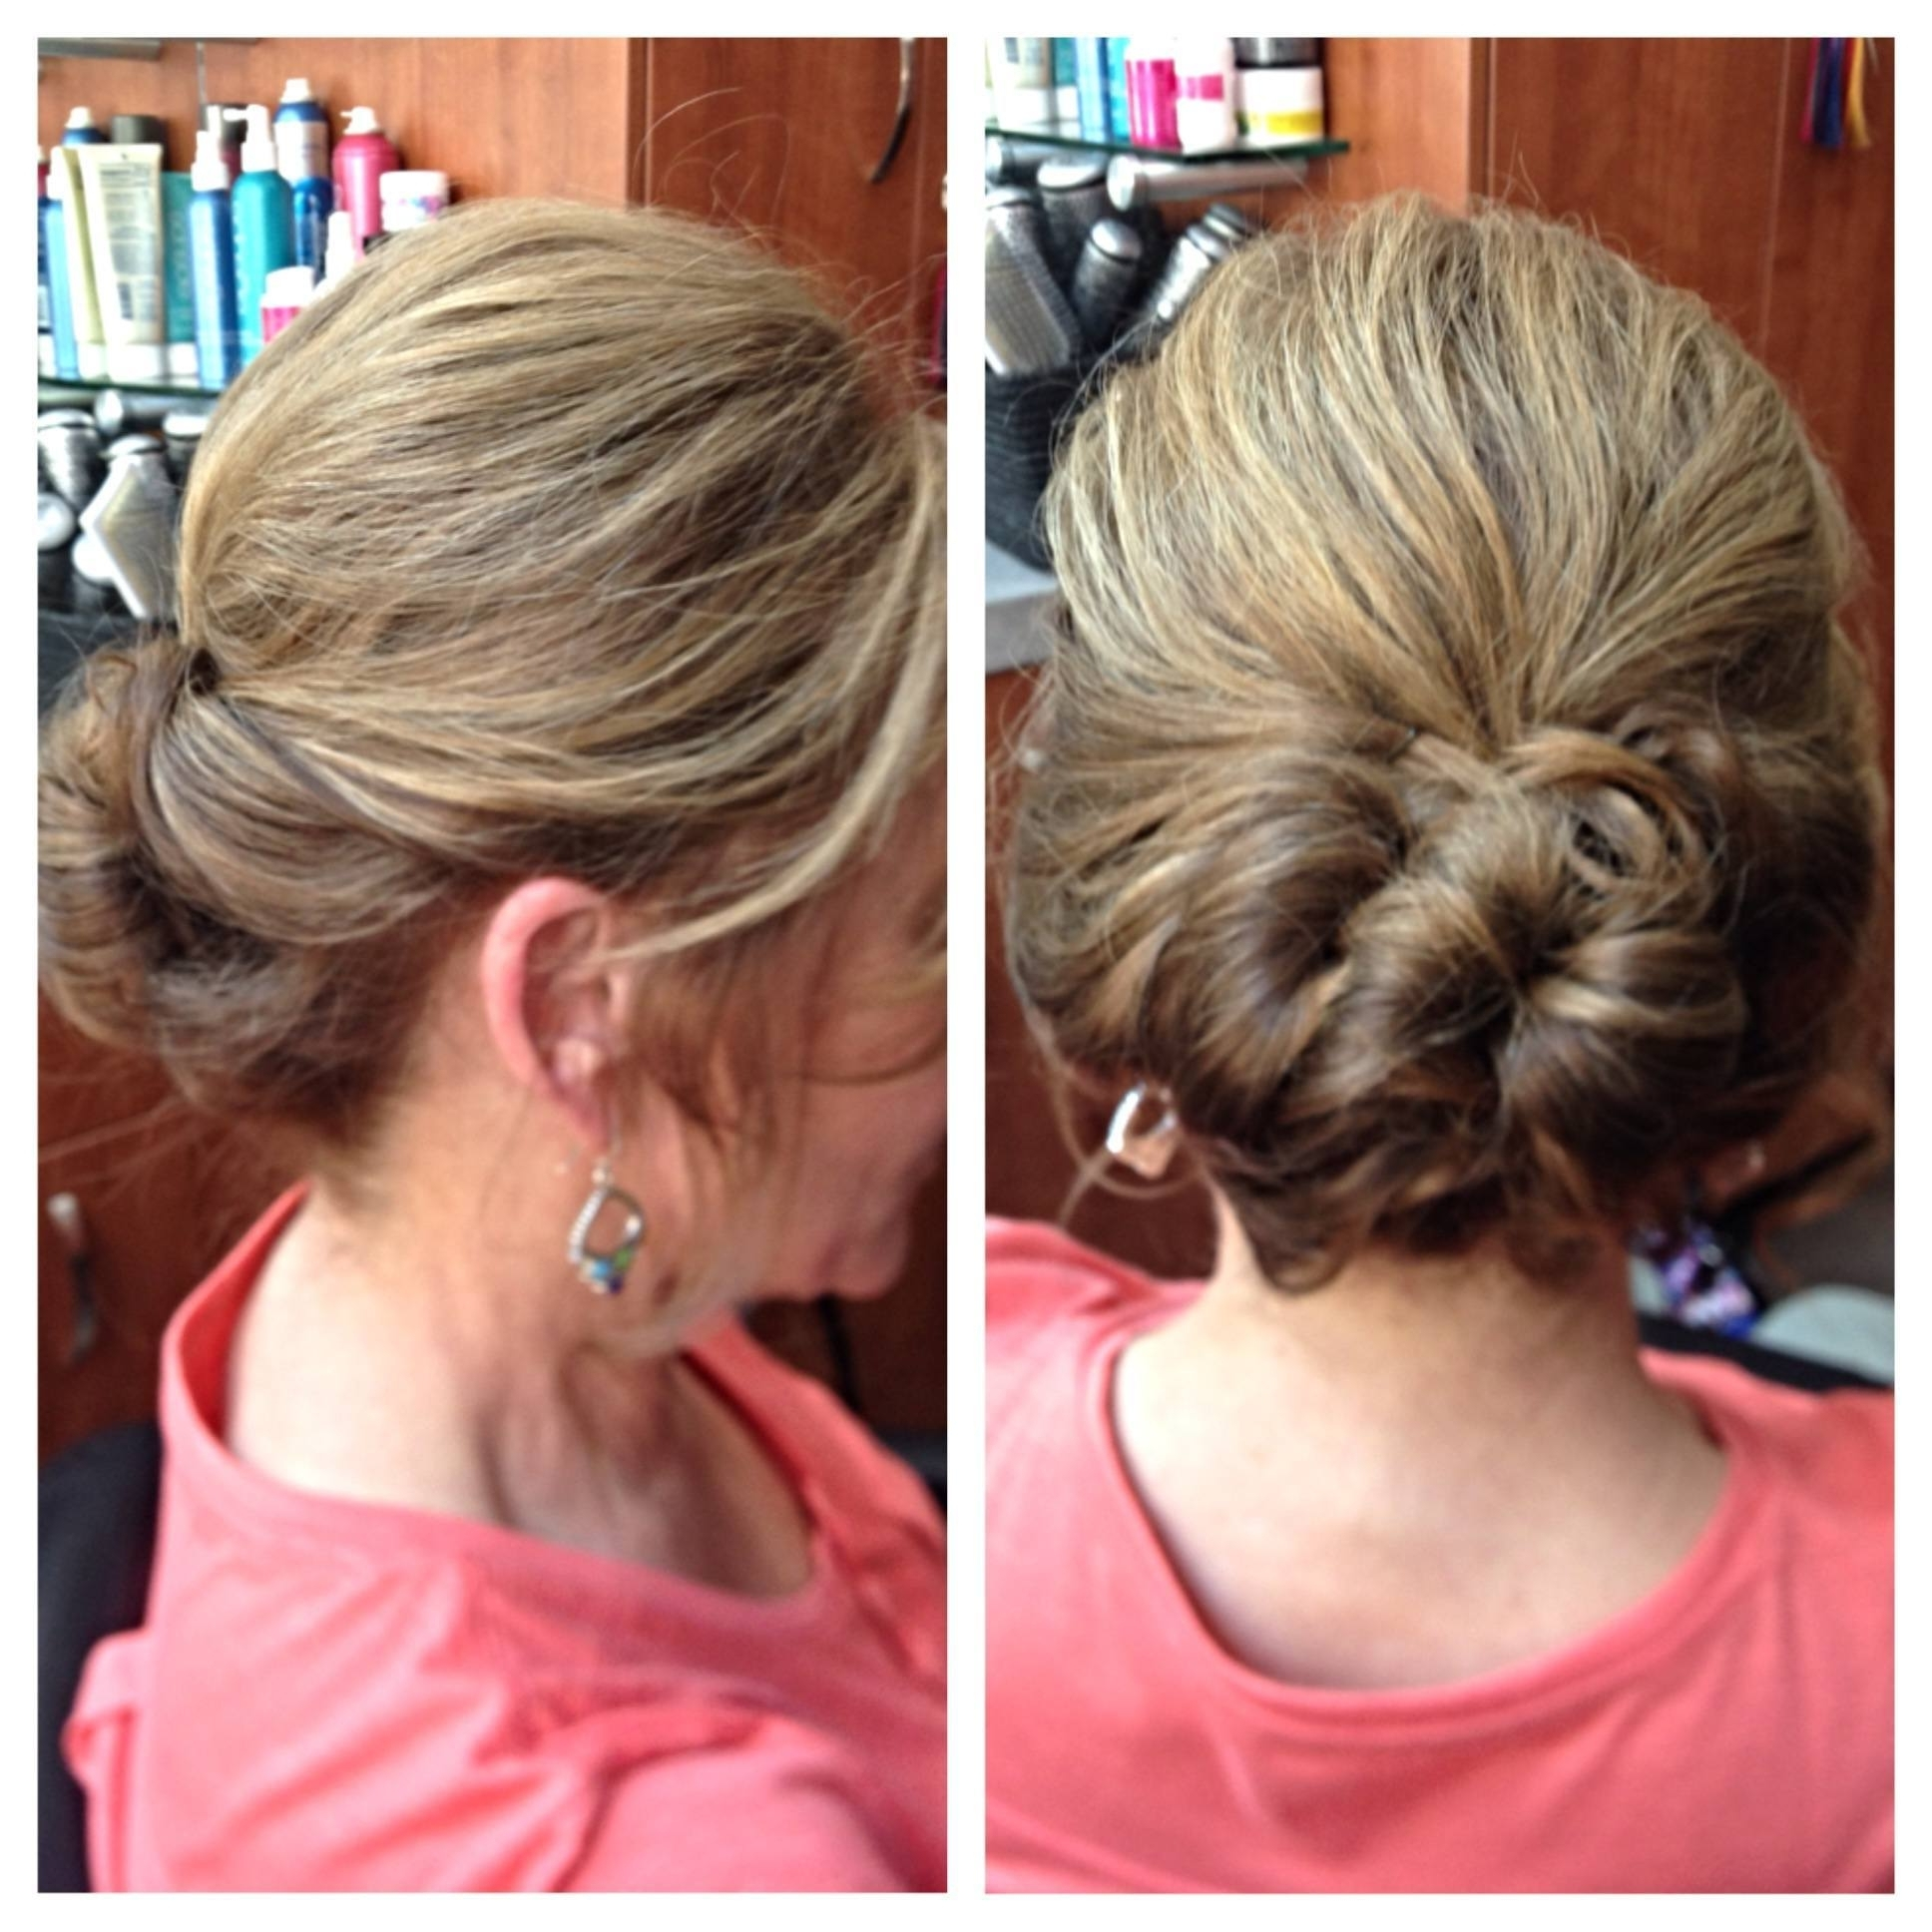 Popular Mother Of The Bride Updo Wedding Hairstyles With Amusing Wedding Hairstyles For Mother Of The Bride About Pin (View 14 of 15)